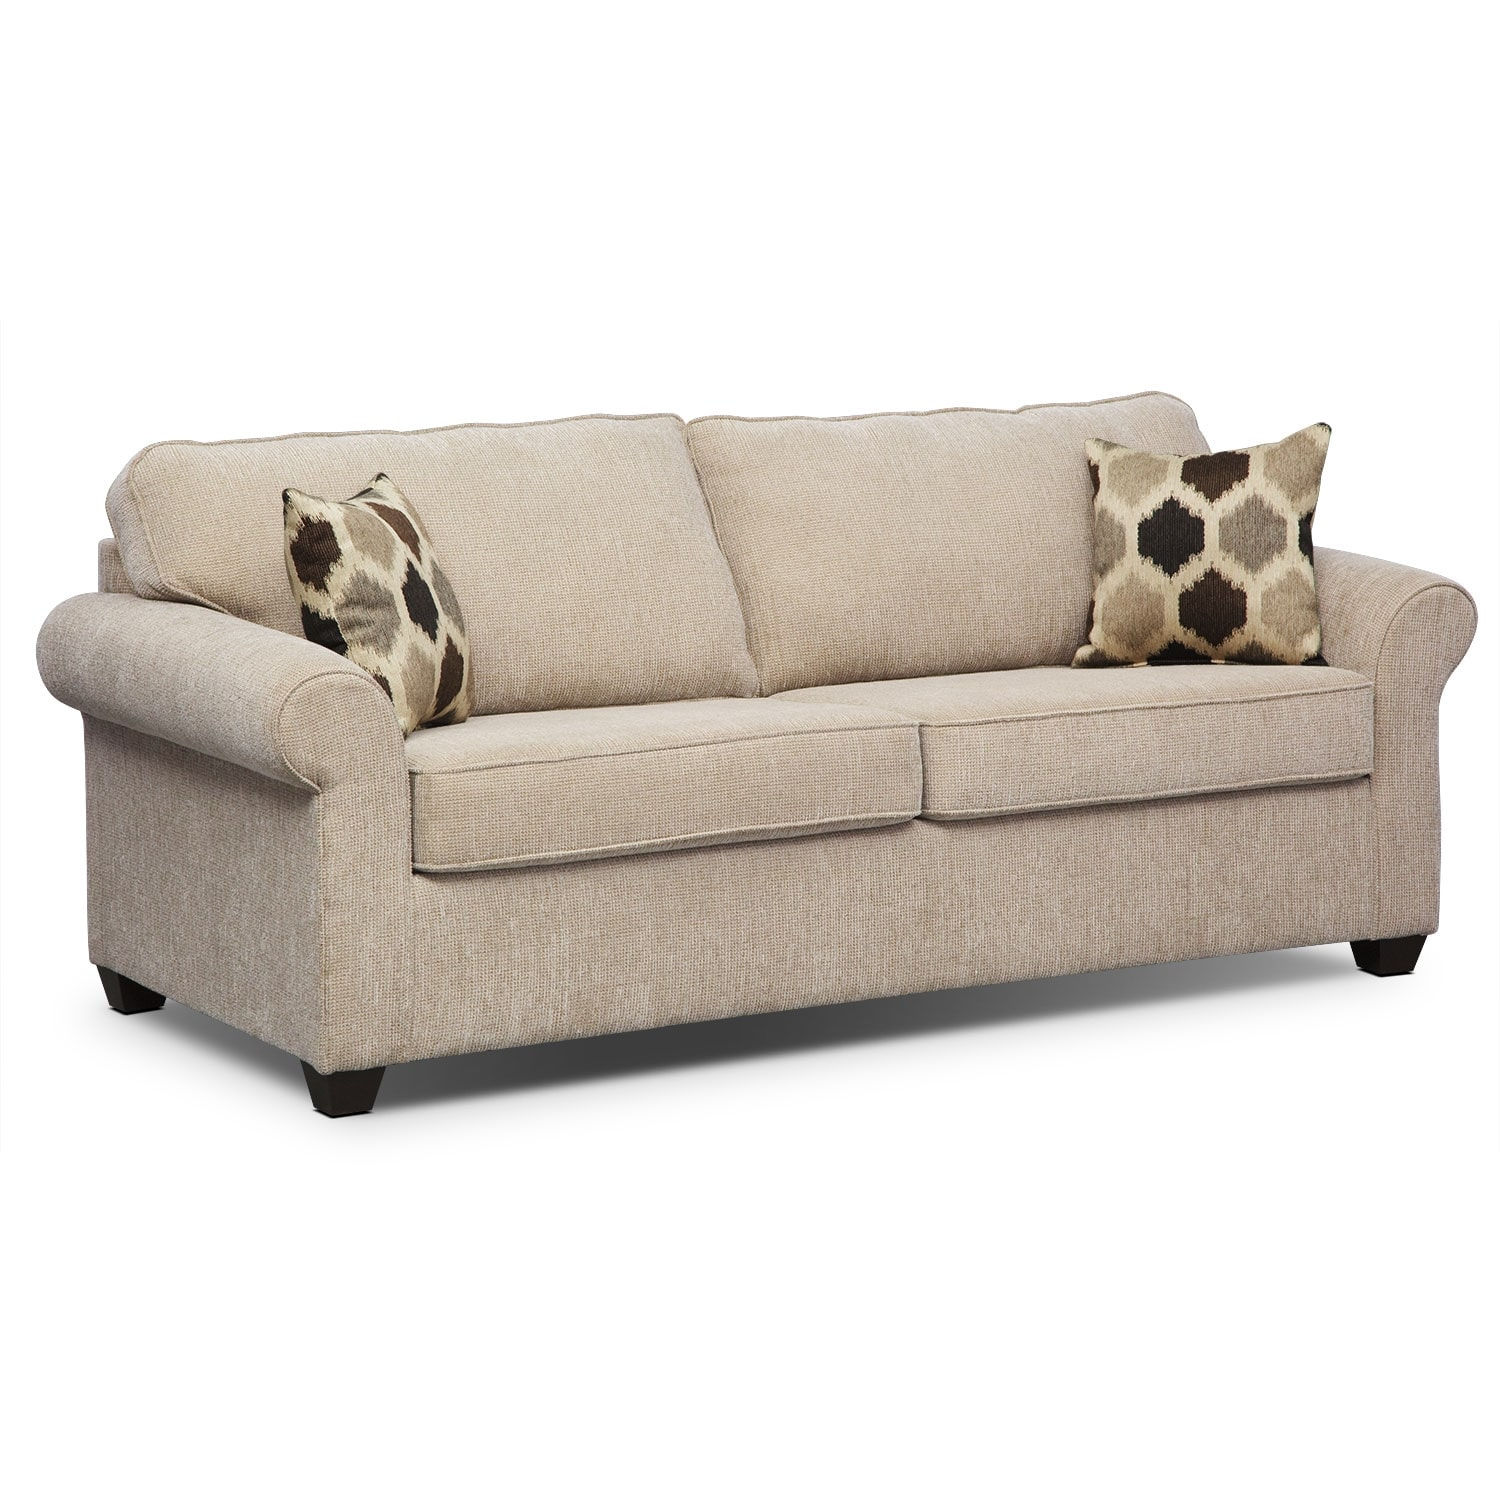 Living Room Furniture - Fletcher Queen Memory Foam Sleeper Sofa - Beige